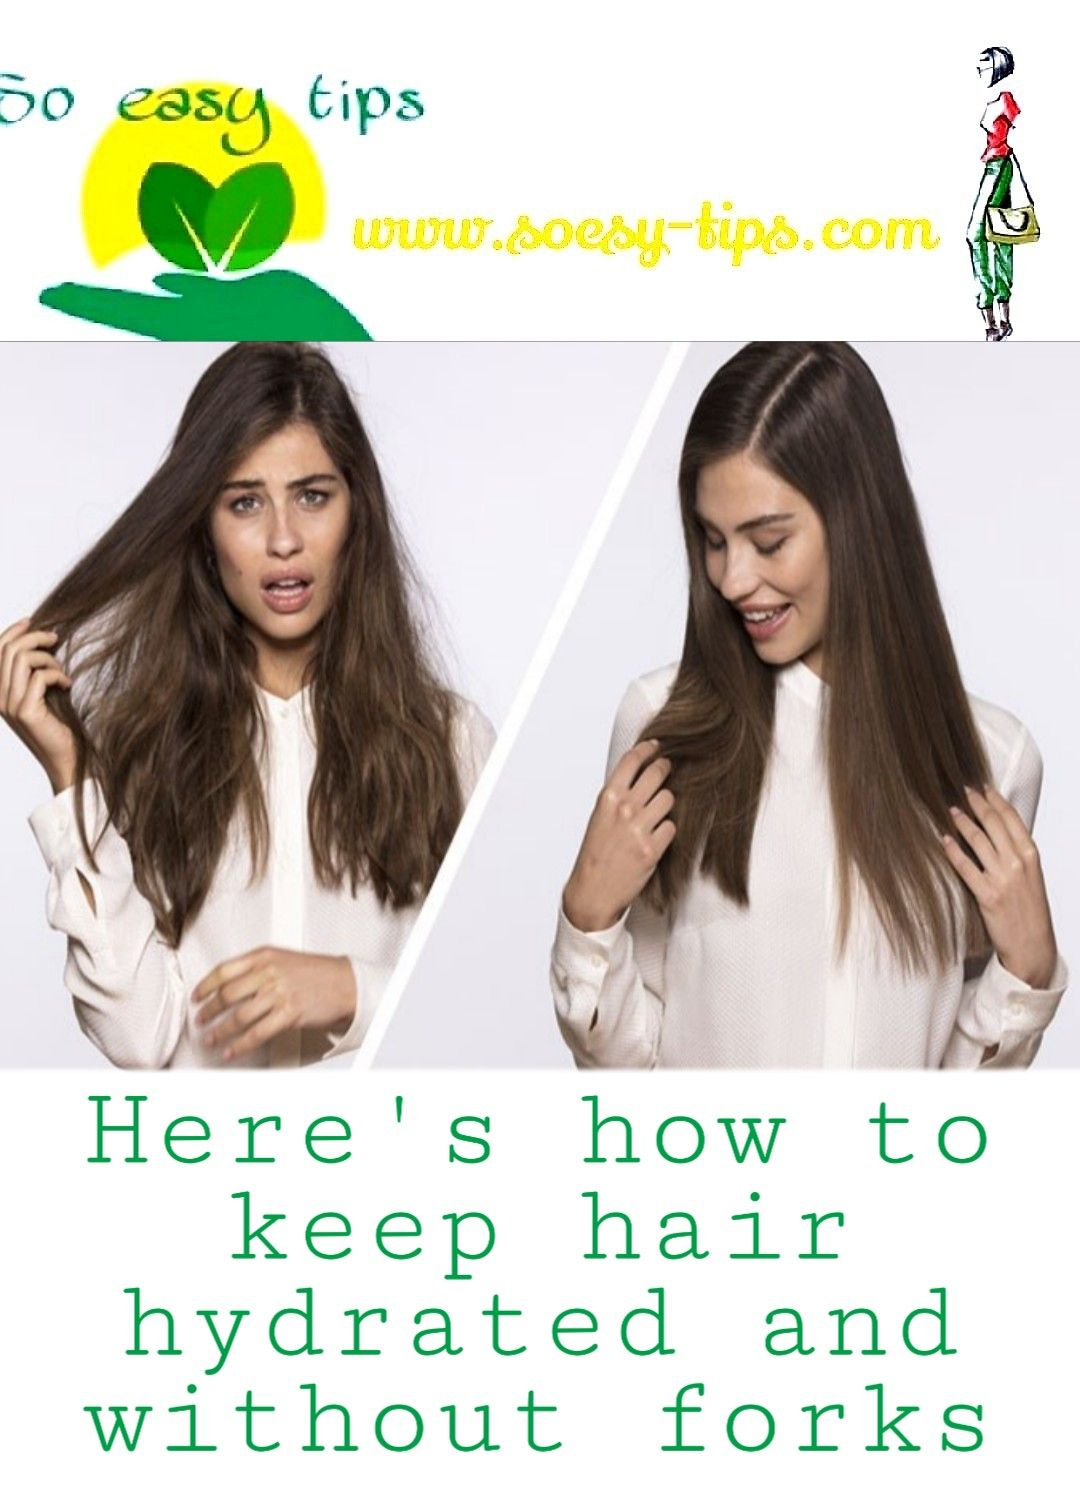 Here's how to keep hair hydrated and without forks